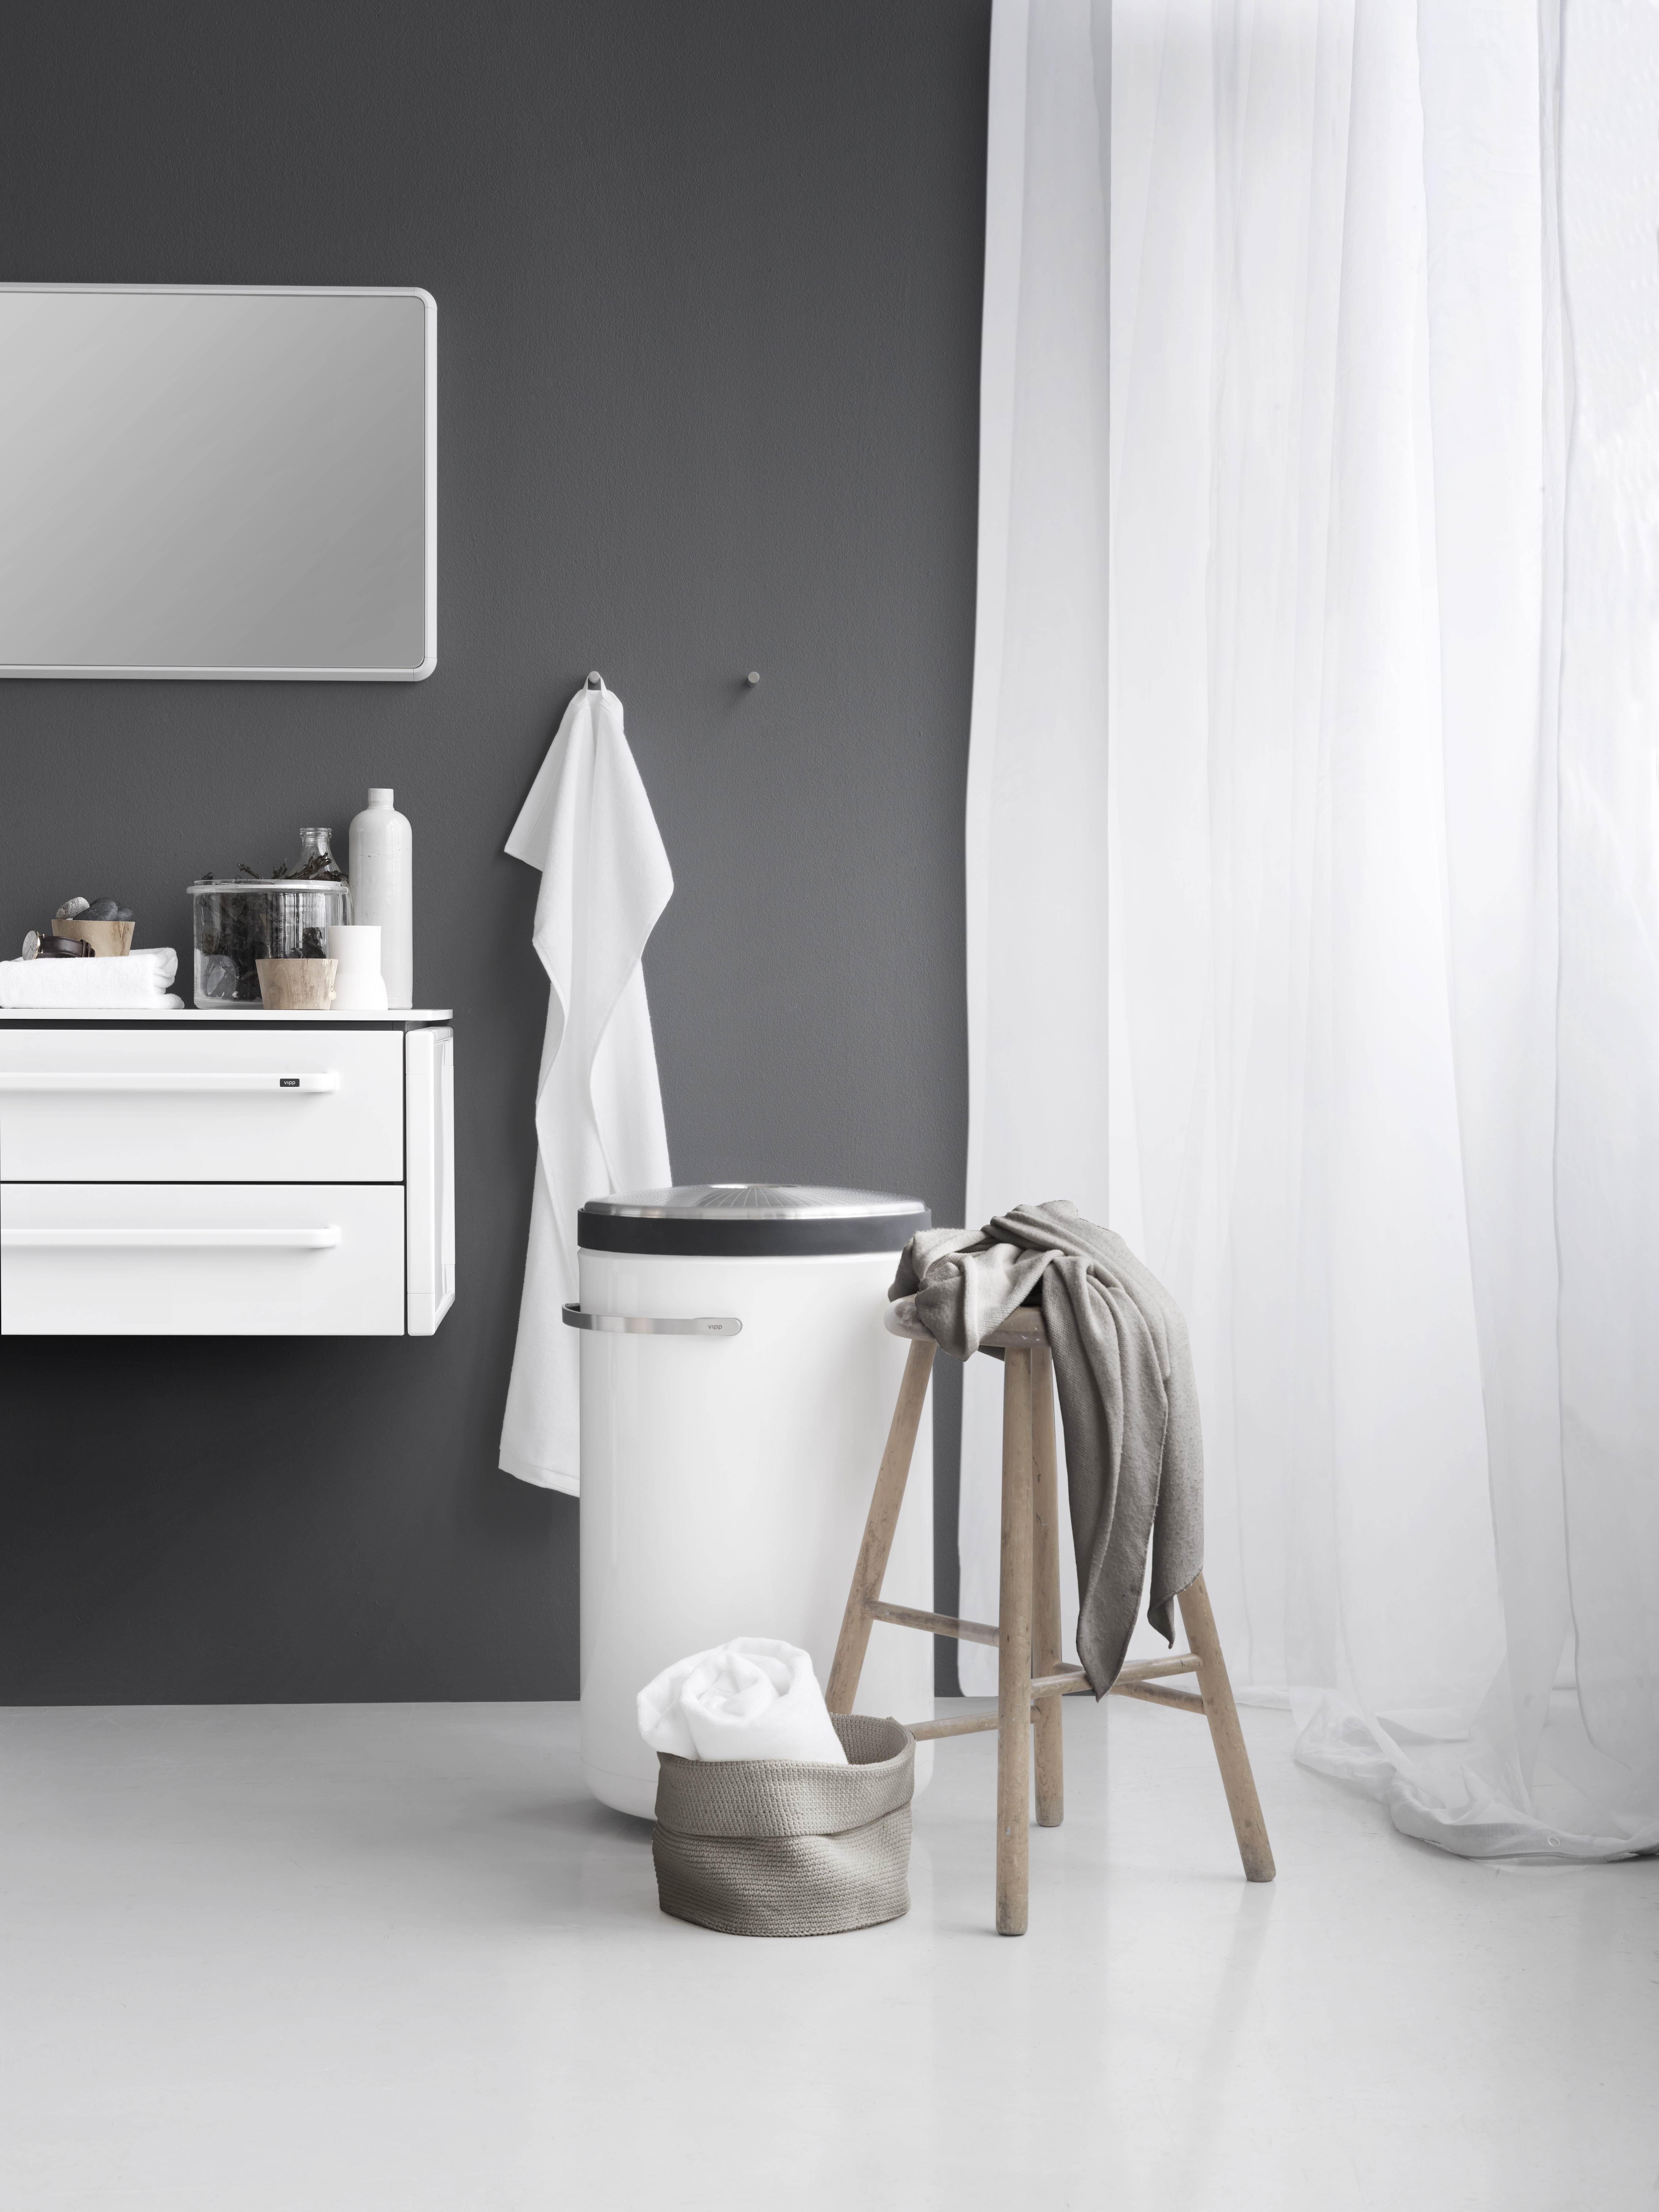 6 simple bathroom collections for the design conscious cate st hill